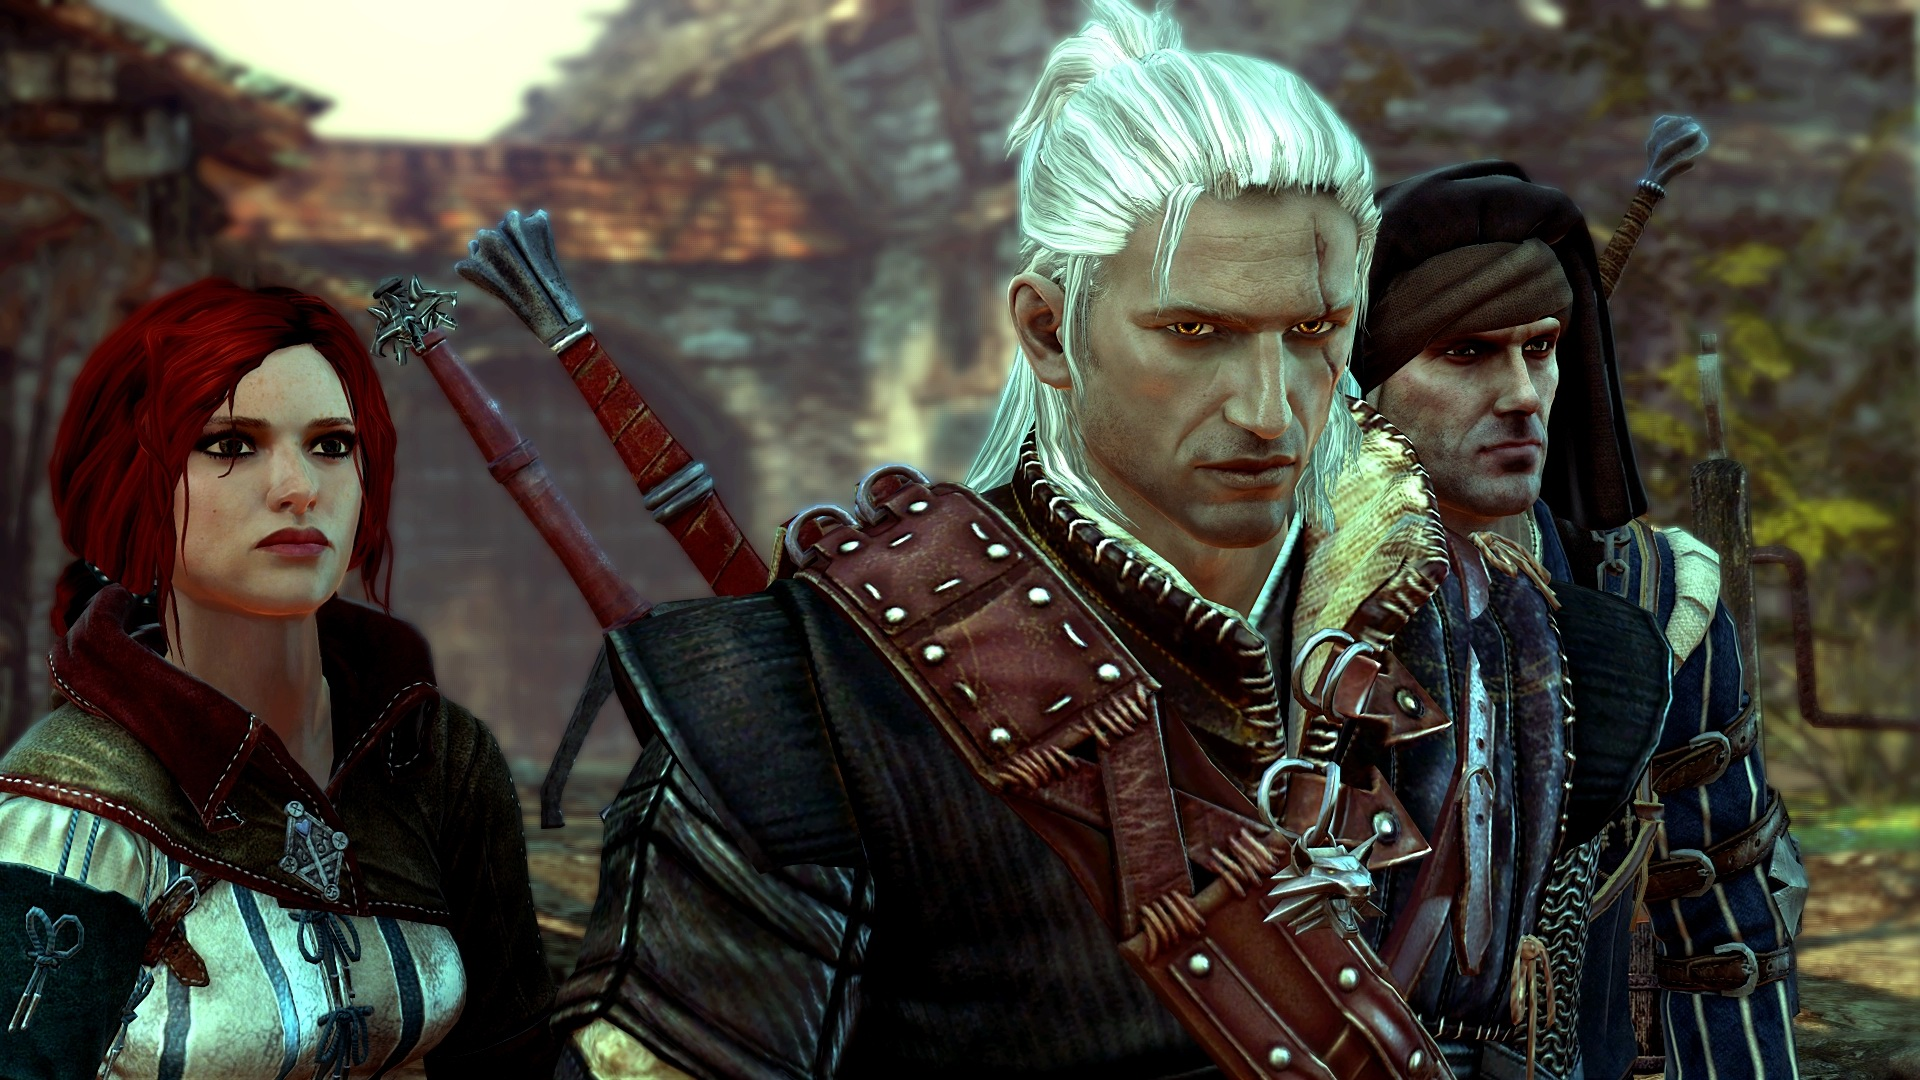 TheWitcher22